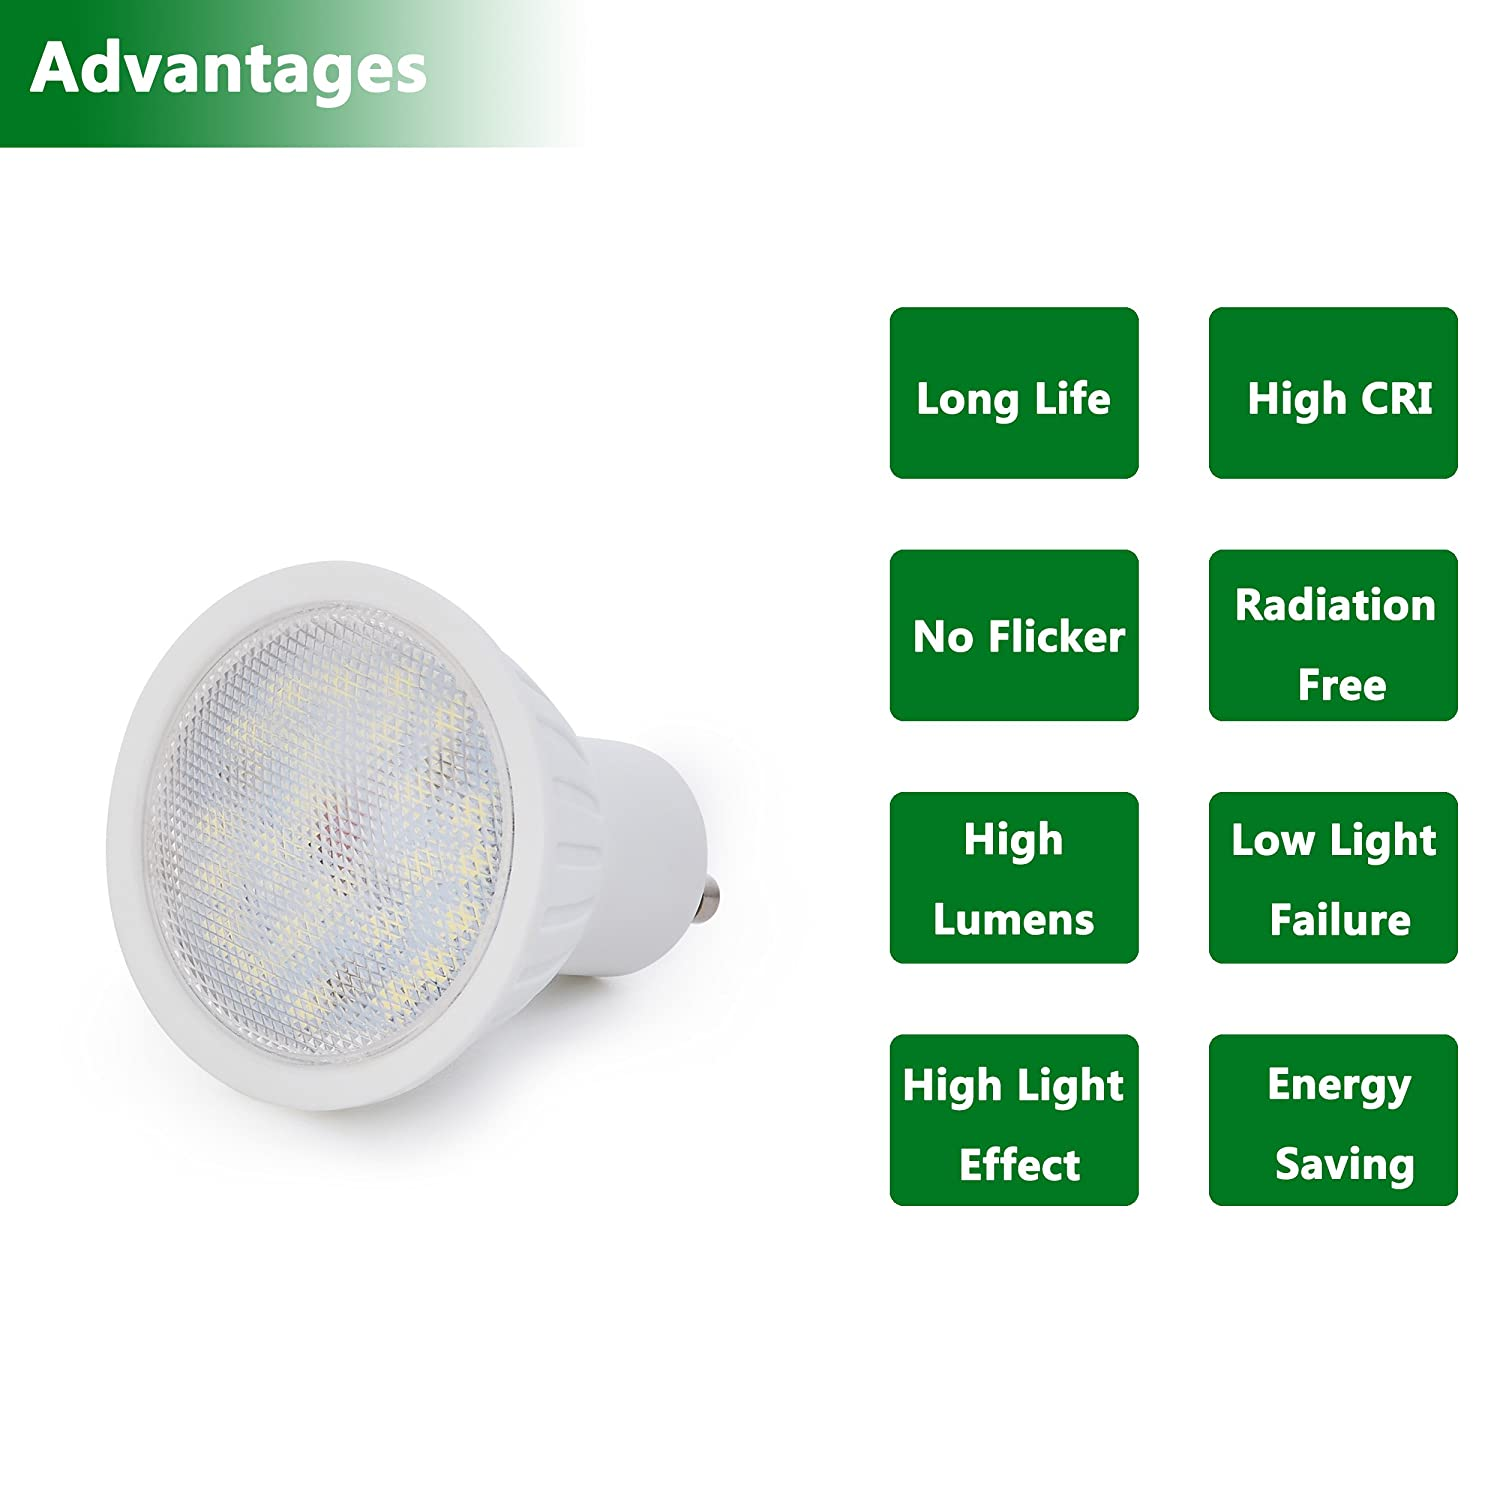 6 Pack Gu10 Led Bulbs 7w 700lm Light Bulb 3000k Soft White 120v A C Lamp Flicker From Votive Candle Type 1 Cob Schematic 65w Halogen Equivalent 120 Beam Angle Recessed Lighting Downlight Ac 2 Years